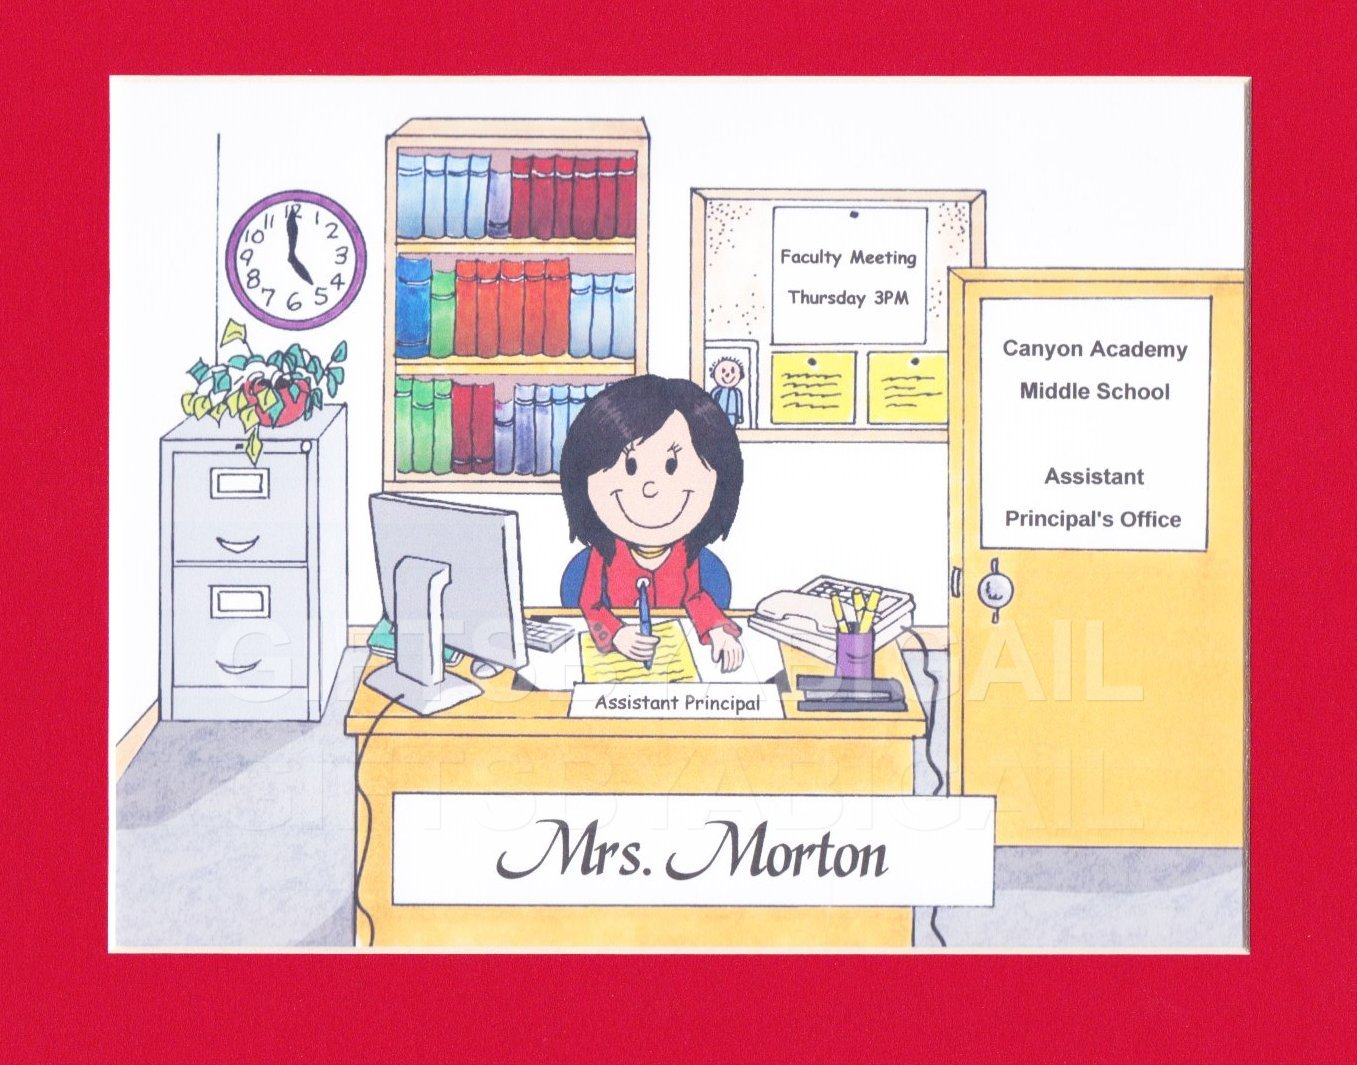 School Secretary Gift Personalized Custom Cartoon Print 8x10, 9x12 Magnet or Keychain